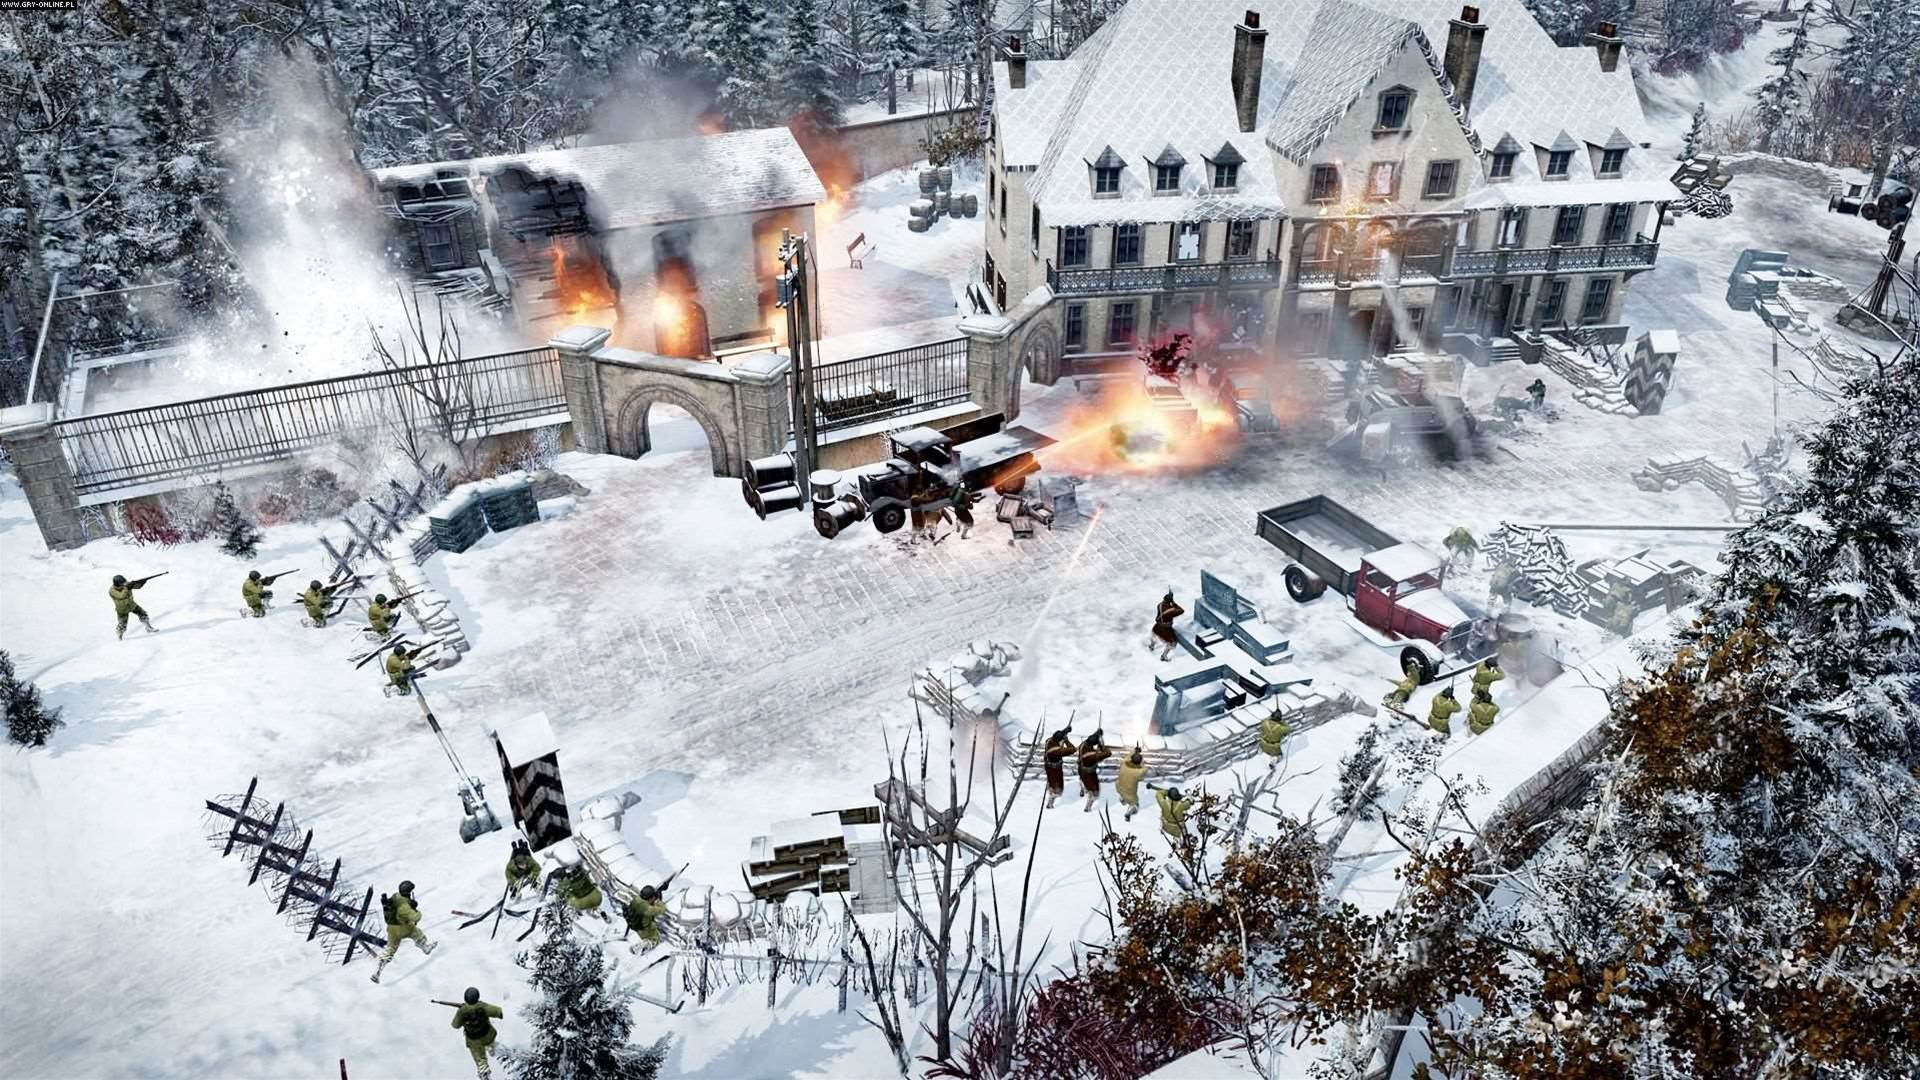 Review: Company of Heroes 2: Ardennes Assault